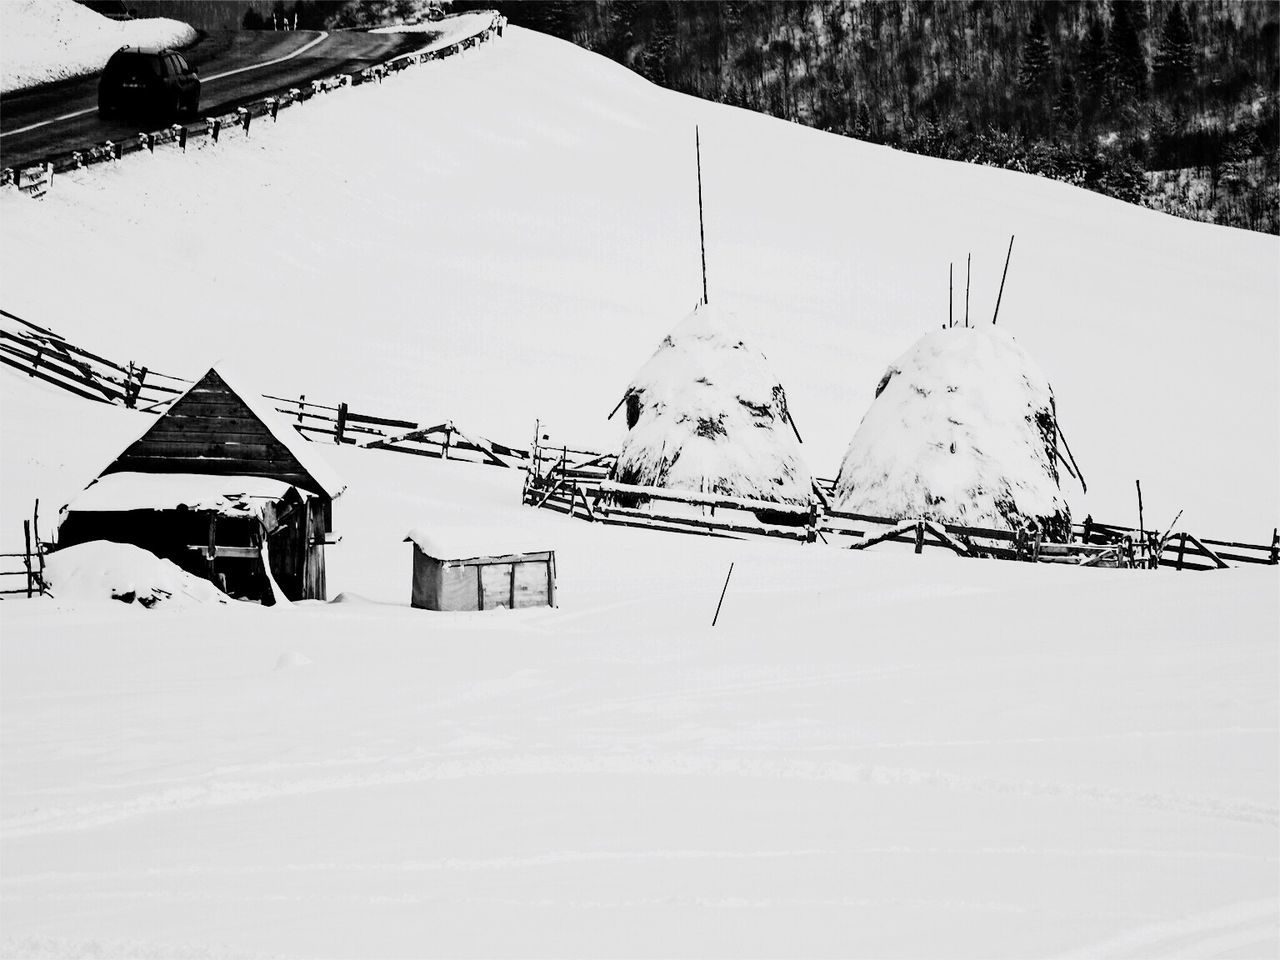 Snow Winter Cold Temperature White Color Built Structure Building Exterior Weather House Architecture Nature Covering Mountain Travel Frozen Outdoors No People Beauty In Nature Day Scenics Snowing